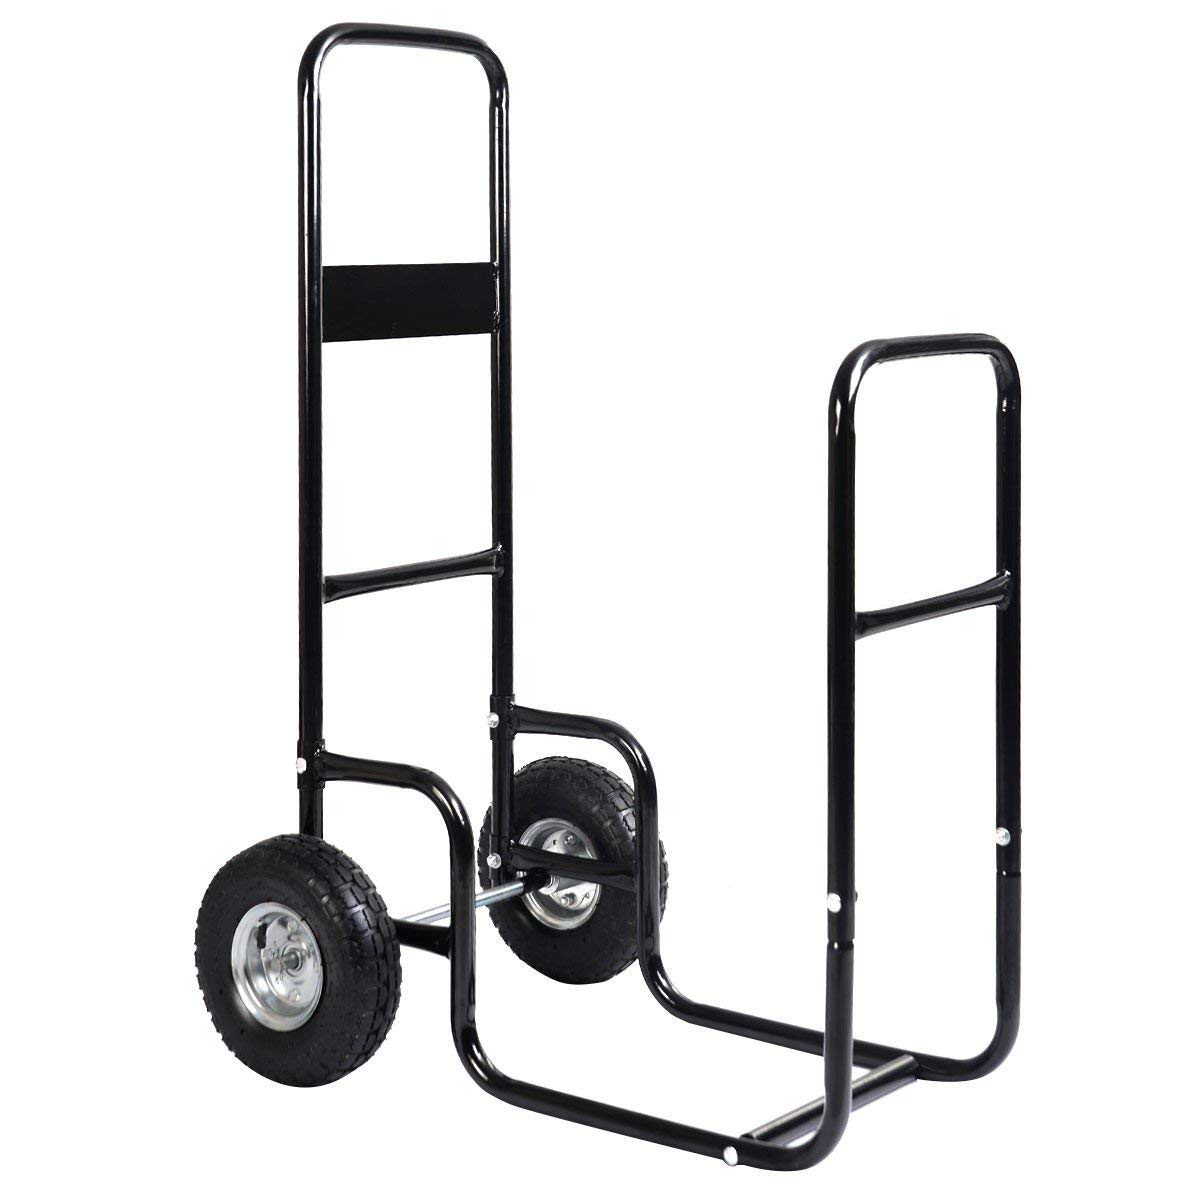 MyEasyShopping Rolling Firewood Carrier Wood Mover Firewood Cart Carrier Wood Mover Rolling Hauler Dolly Rack Caddy Log Fire